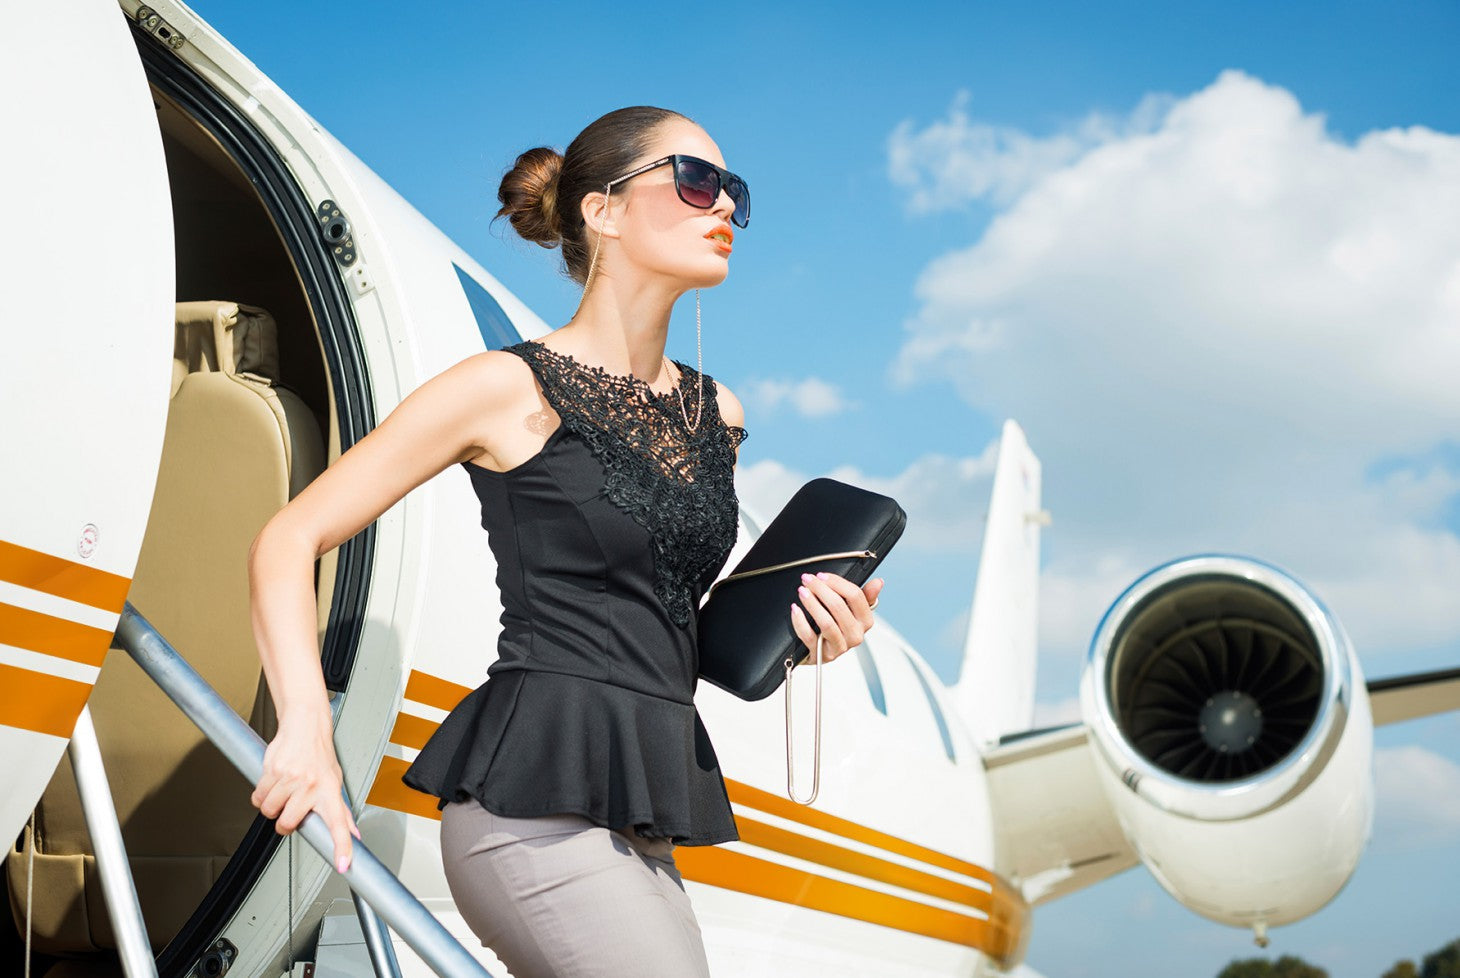 The Jetsetter's 2-Step Guide to Anti-Aging